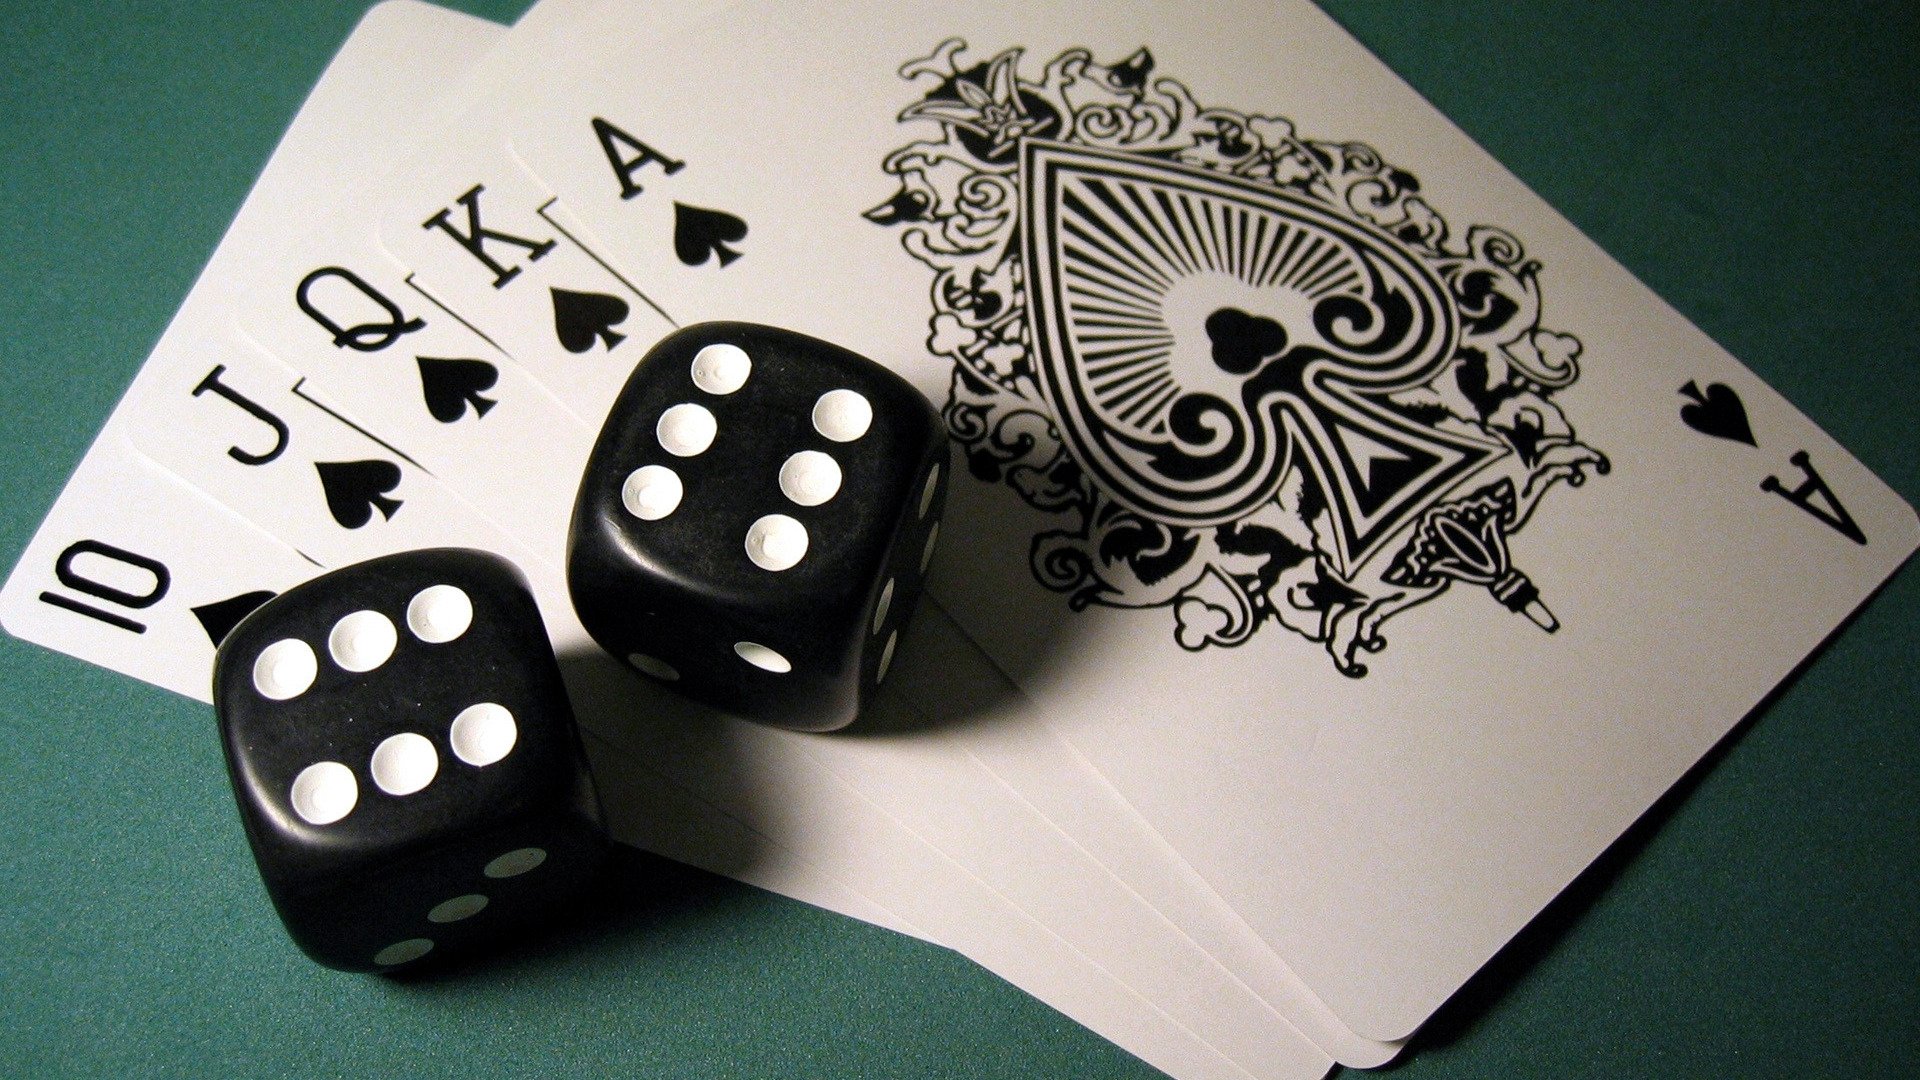 If You Want To Be A Winner Change Your Casino Philosophy Now